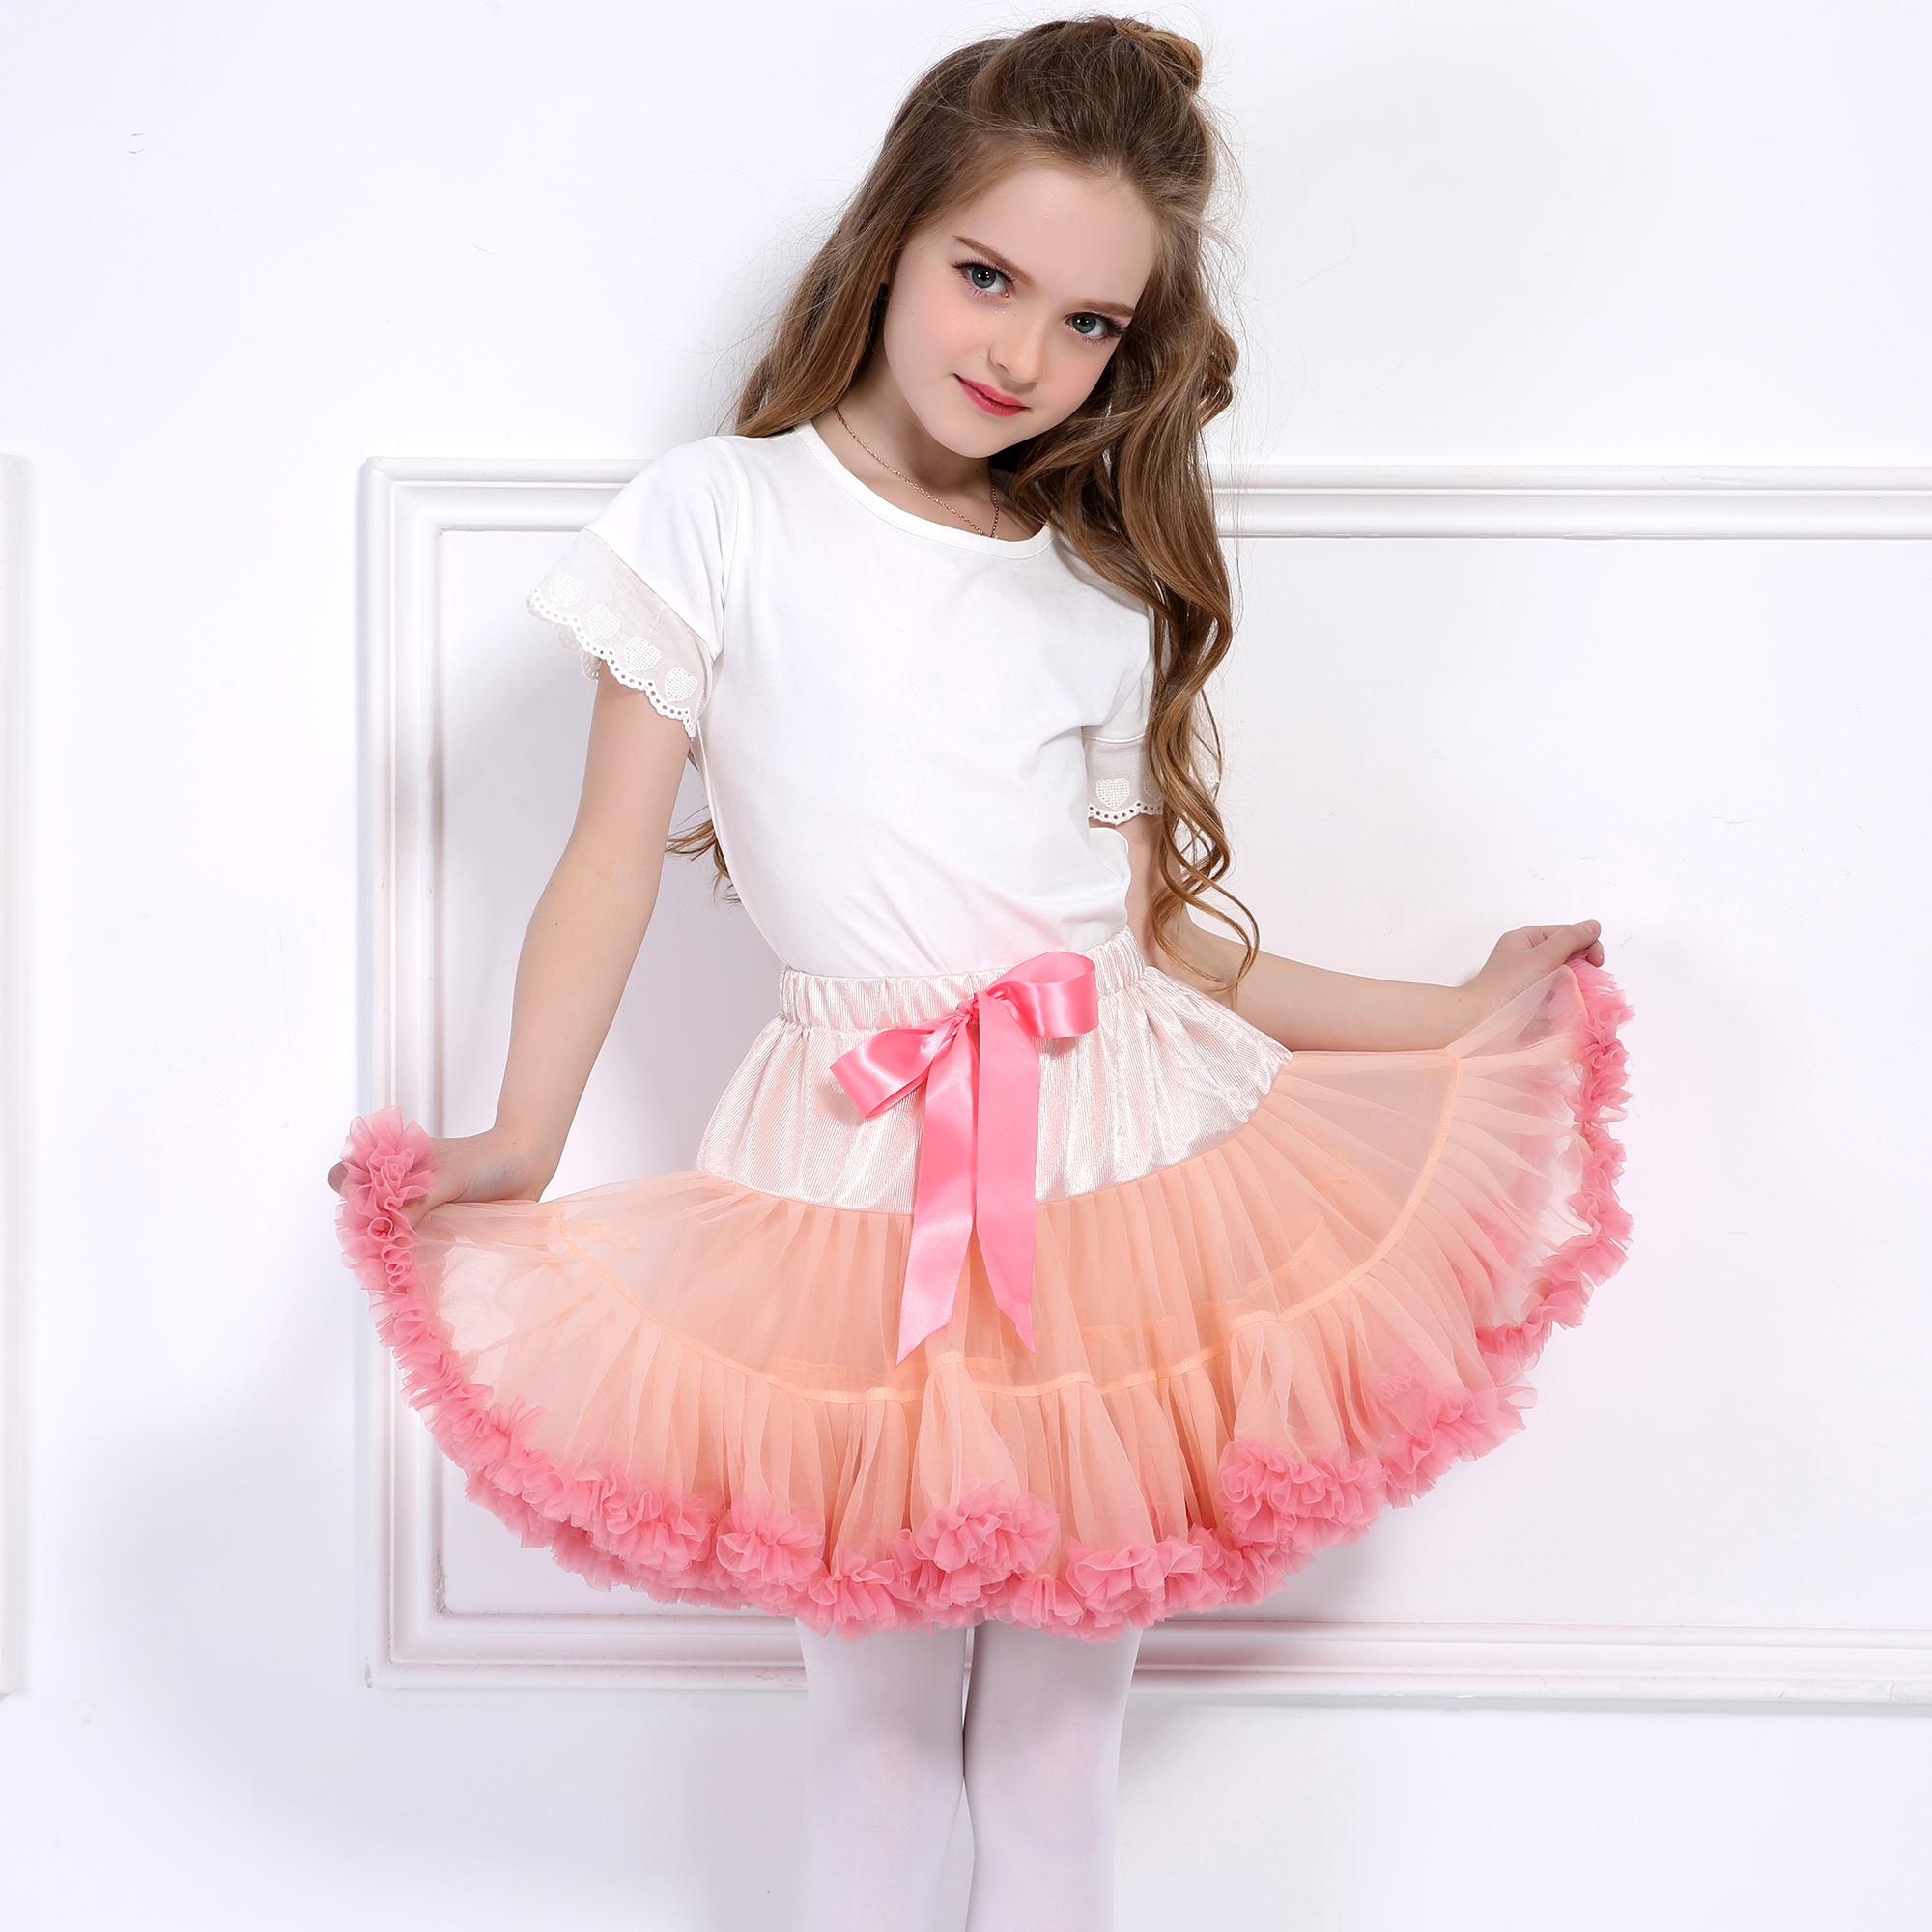 2pcs-Baby-Girls-Tutu-Skirts-Headband-Fluffy-Kids-Pettiskirts-Children-Clothes-Princess-Dance-Party-Tulle-Petticoat-Wholesale-1